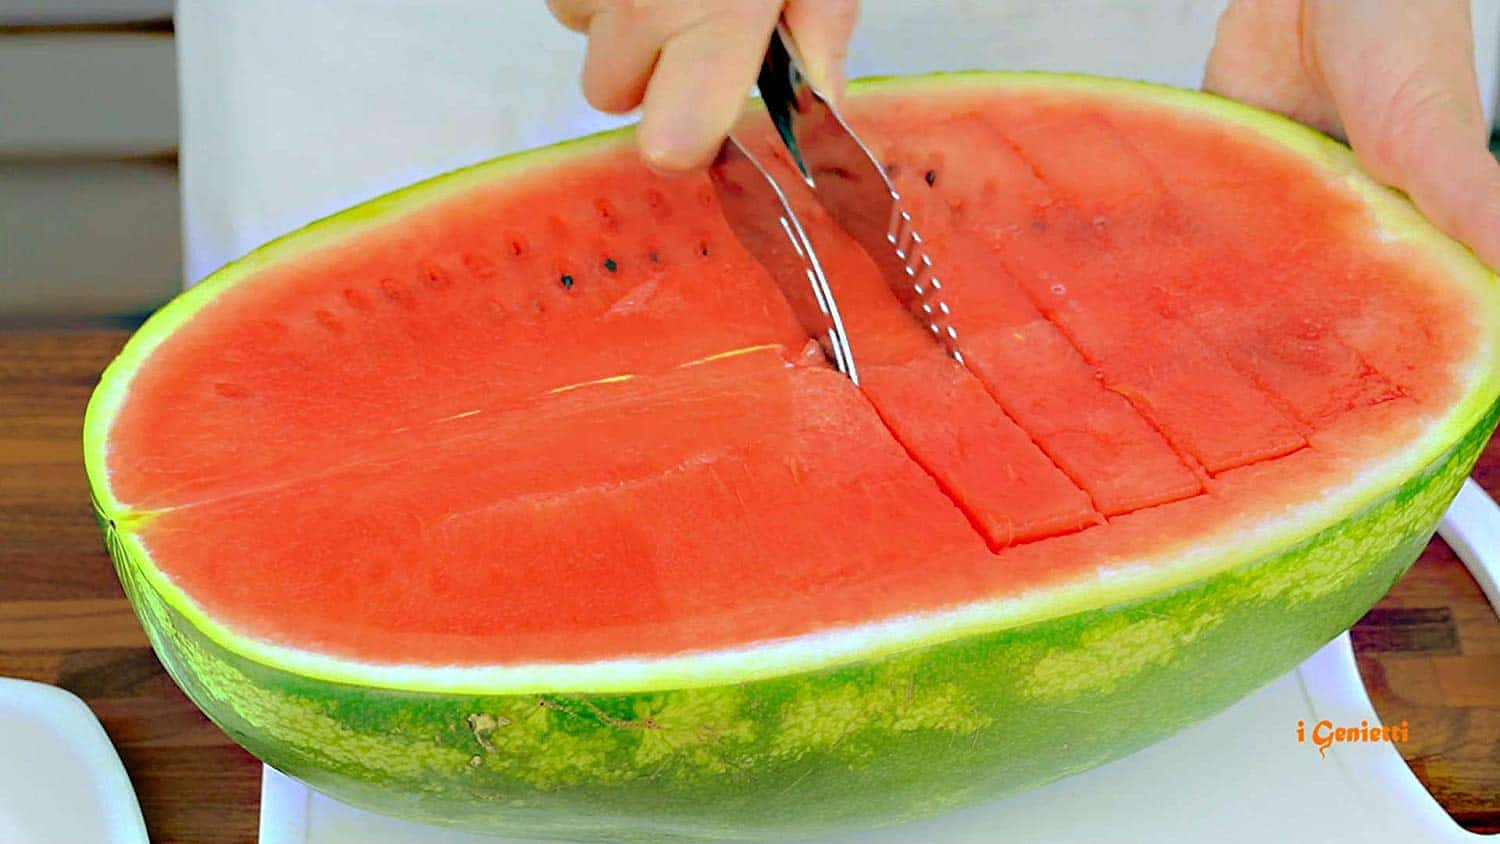 Watermelon Cutter and server